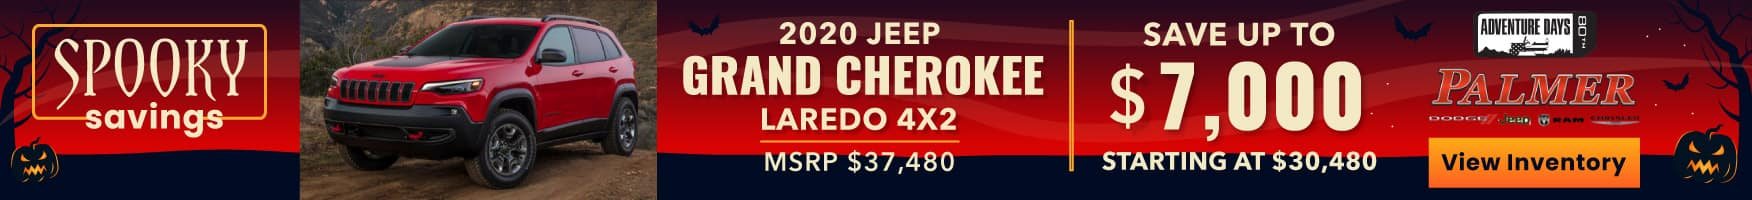 Save Up To $7000 On A Jeep Grand Cherokee!